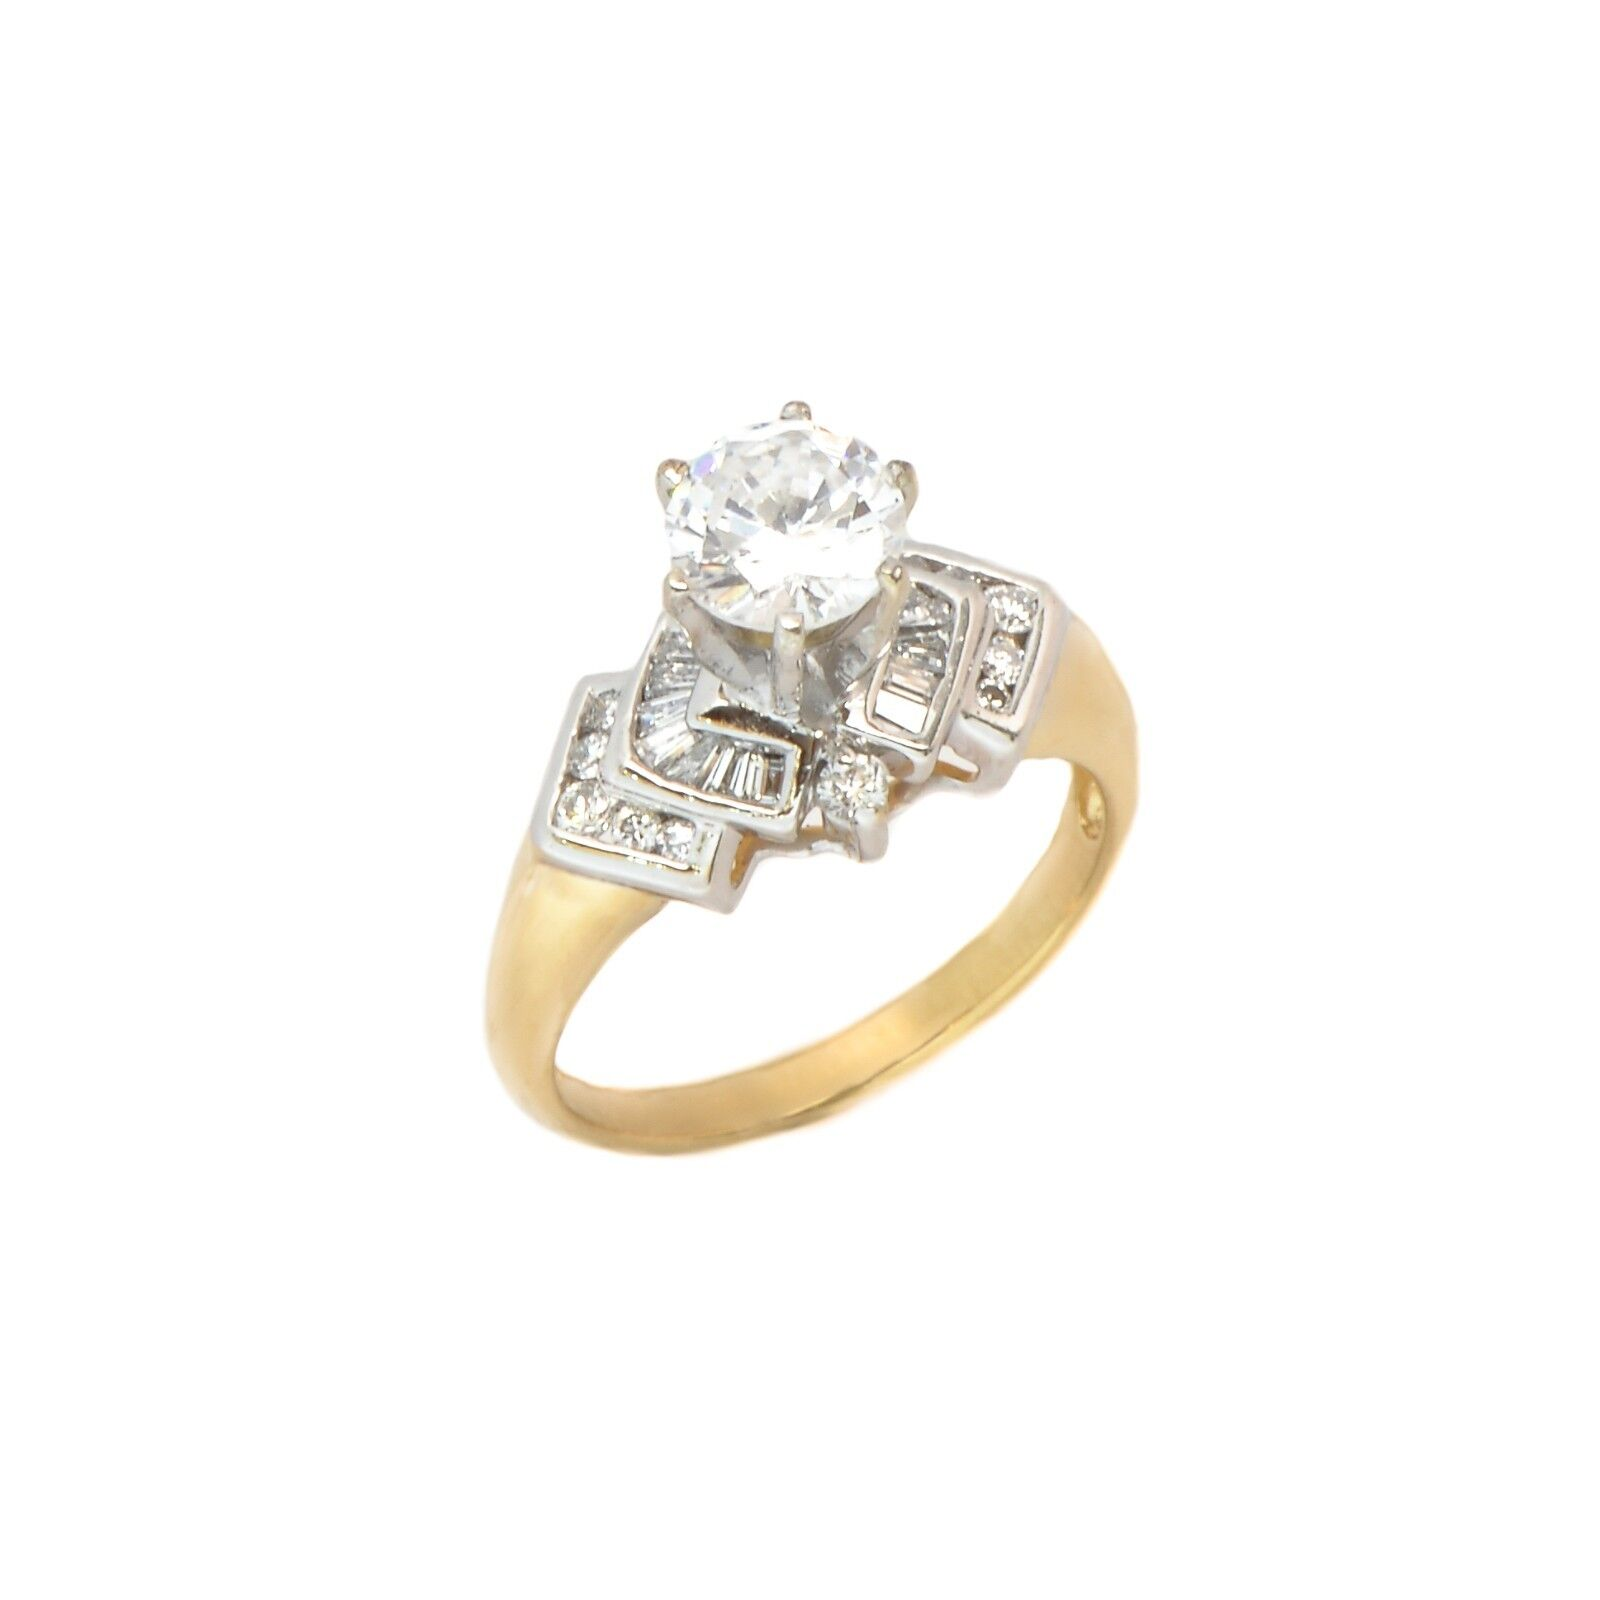 Engagement Ring 14k Yellow gold 0.45CT I VS1 CZ Center Stone 4.7 Grams Size 6.5